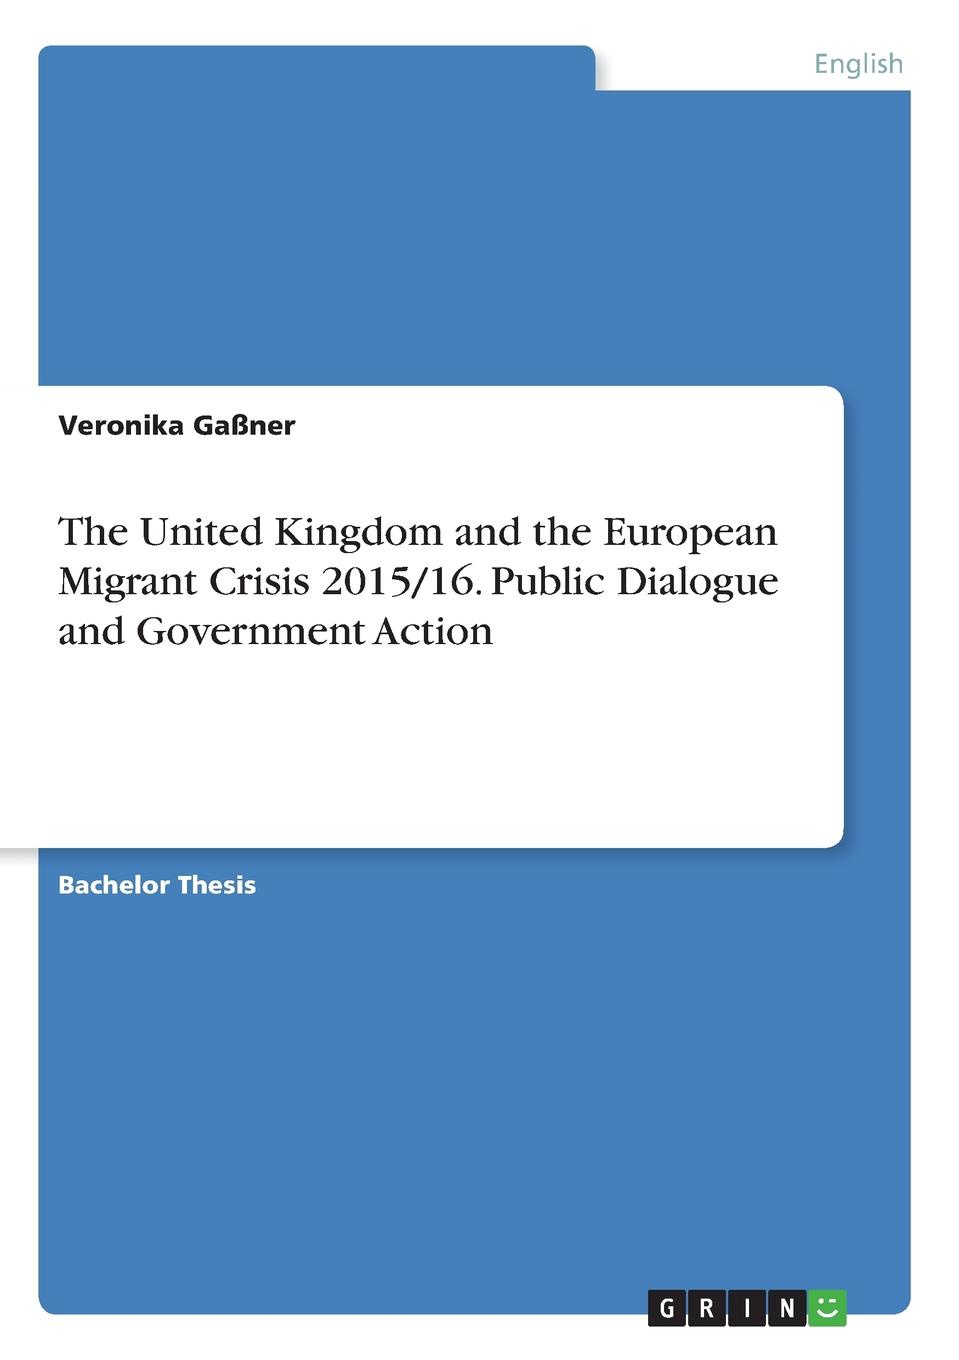 Veronika Gaßner The United Kingdom and the European Migrant Crisis 2015/16. Public Dialogue and Government Action veronika gaßner the united kingdom and the european migrant crisis 2015 16 public dialogue and government action